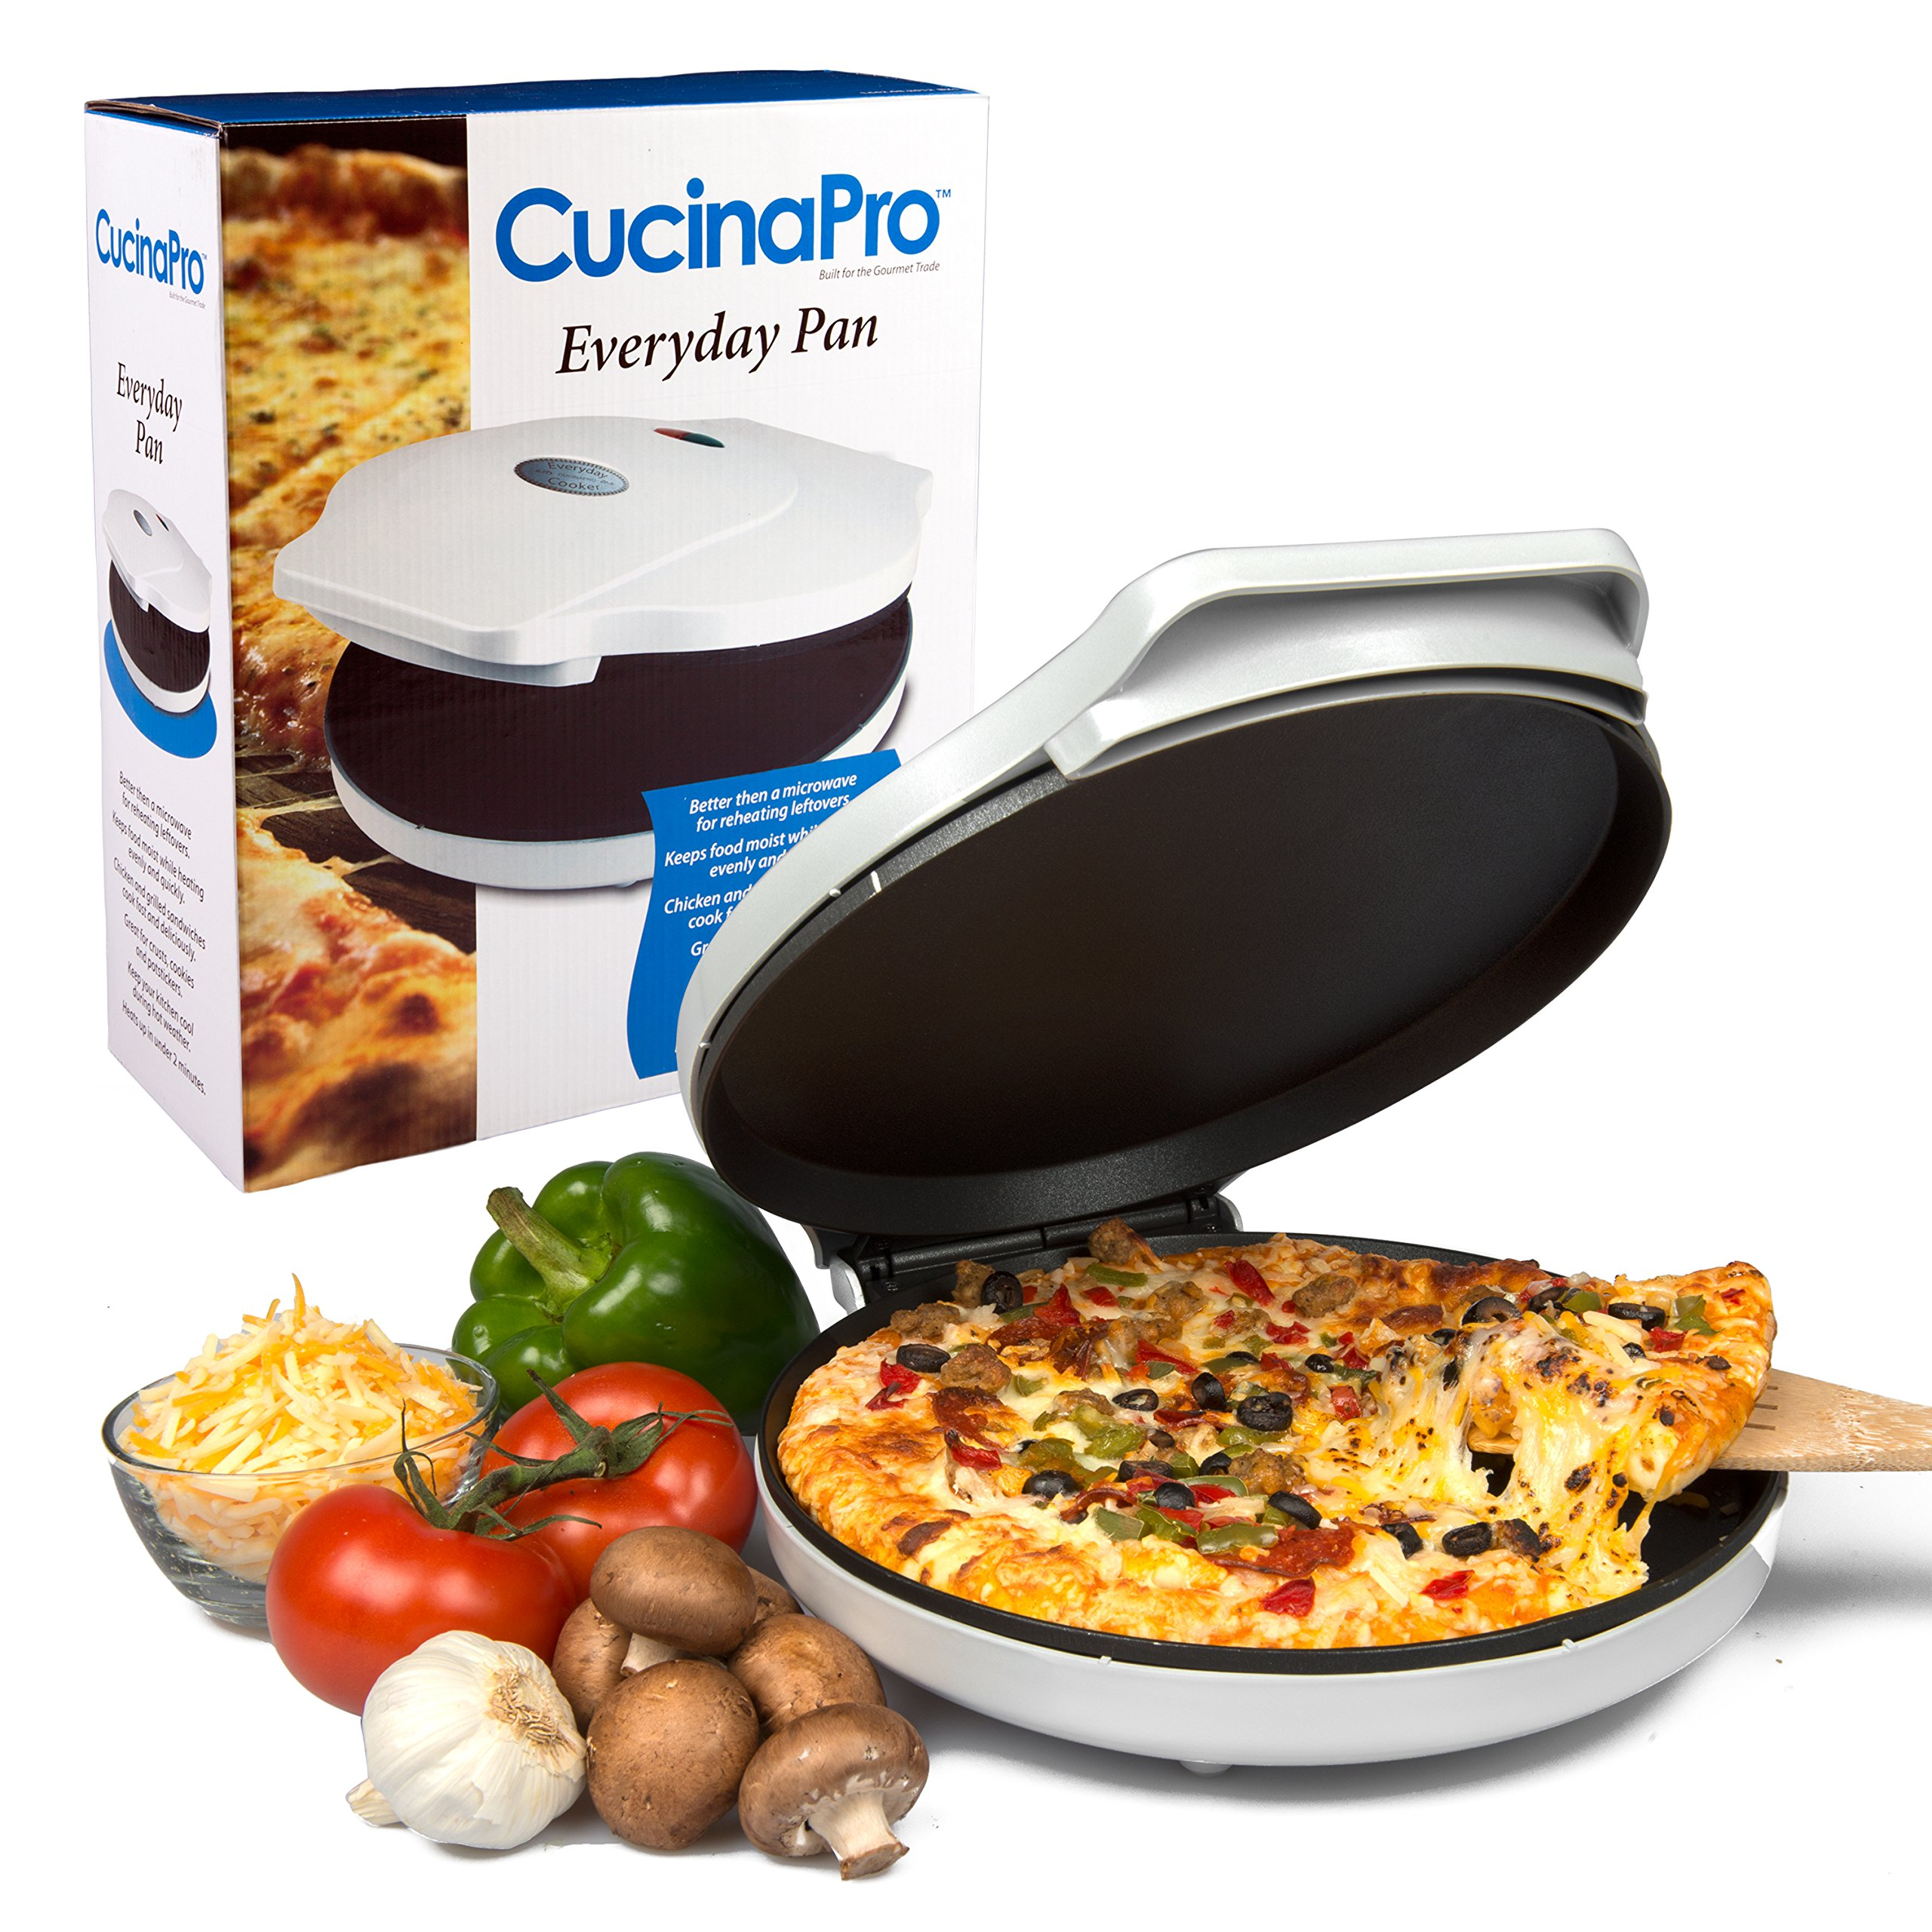 CucinaPro Pizza Maker and Everyday Baker - Electric Griddle Grill Pan Heats and Reheats in less than 2 minutes, White